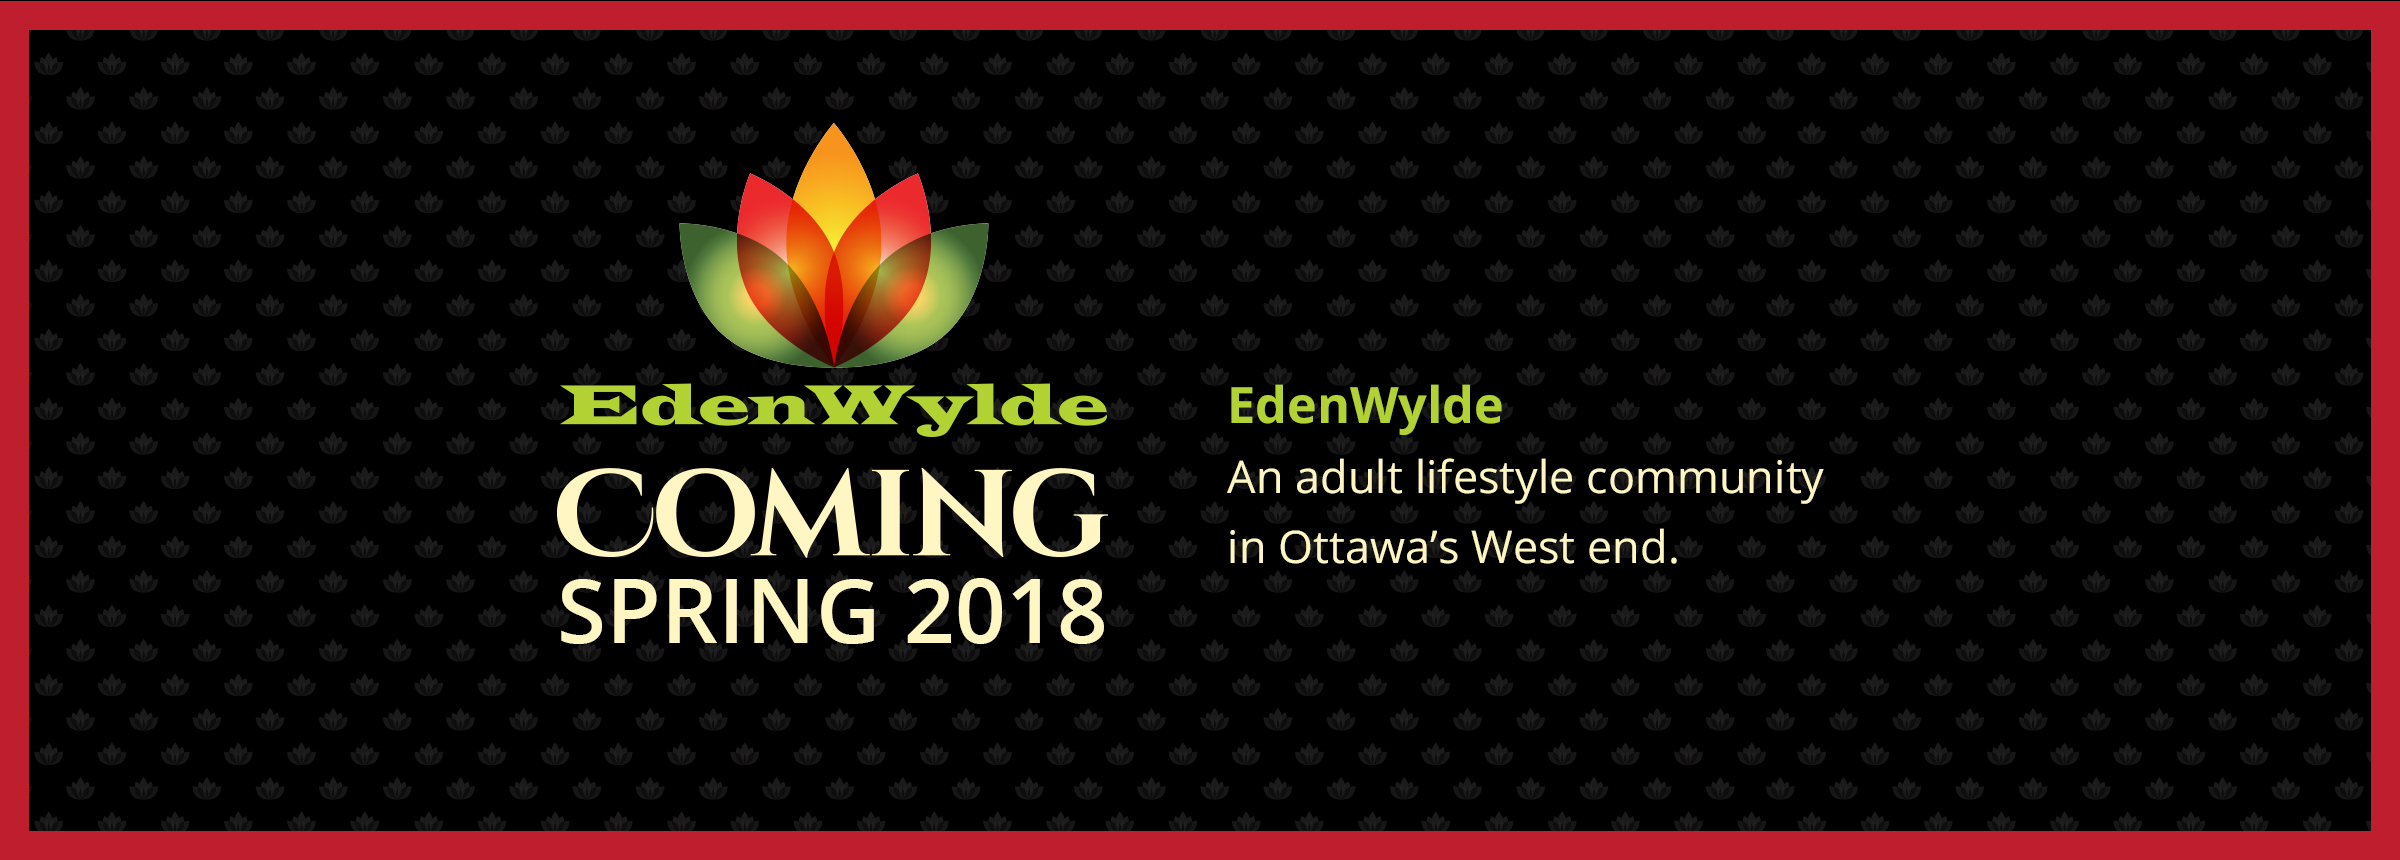 EdenWylde Coming Spring 2018: An Adult Lifestyle community in Ottawa's West end.